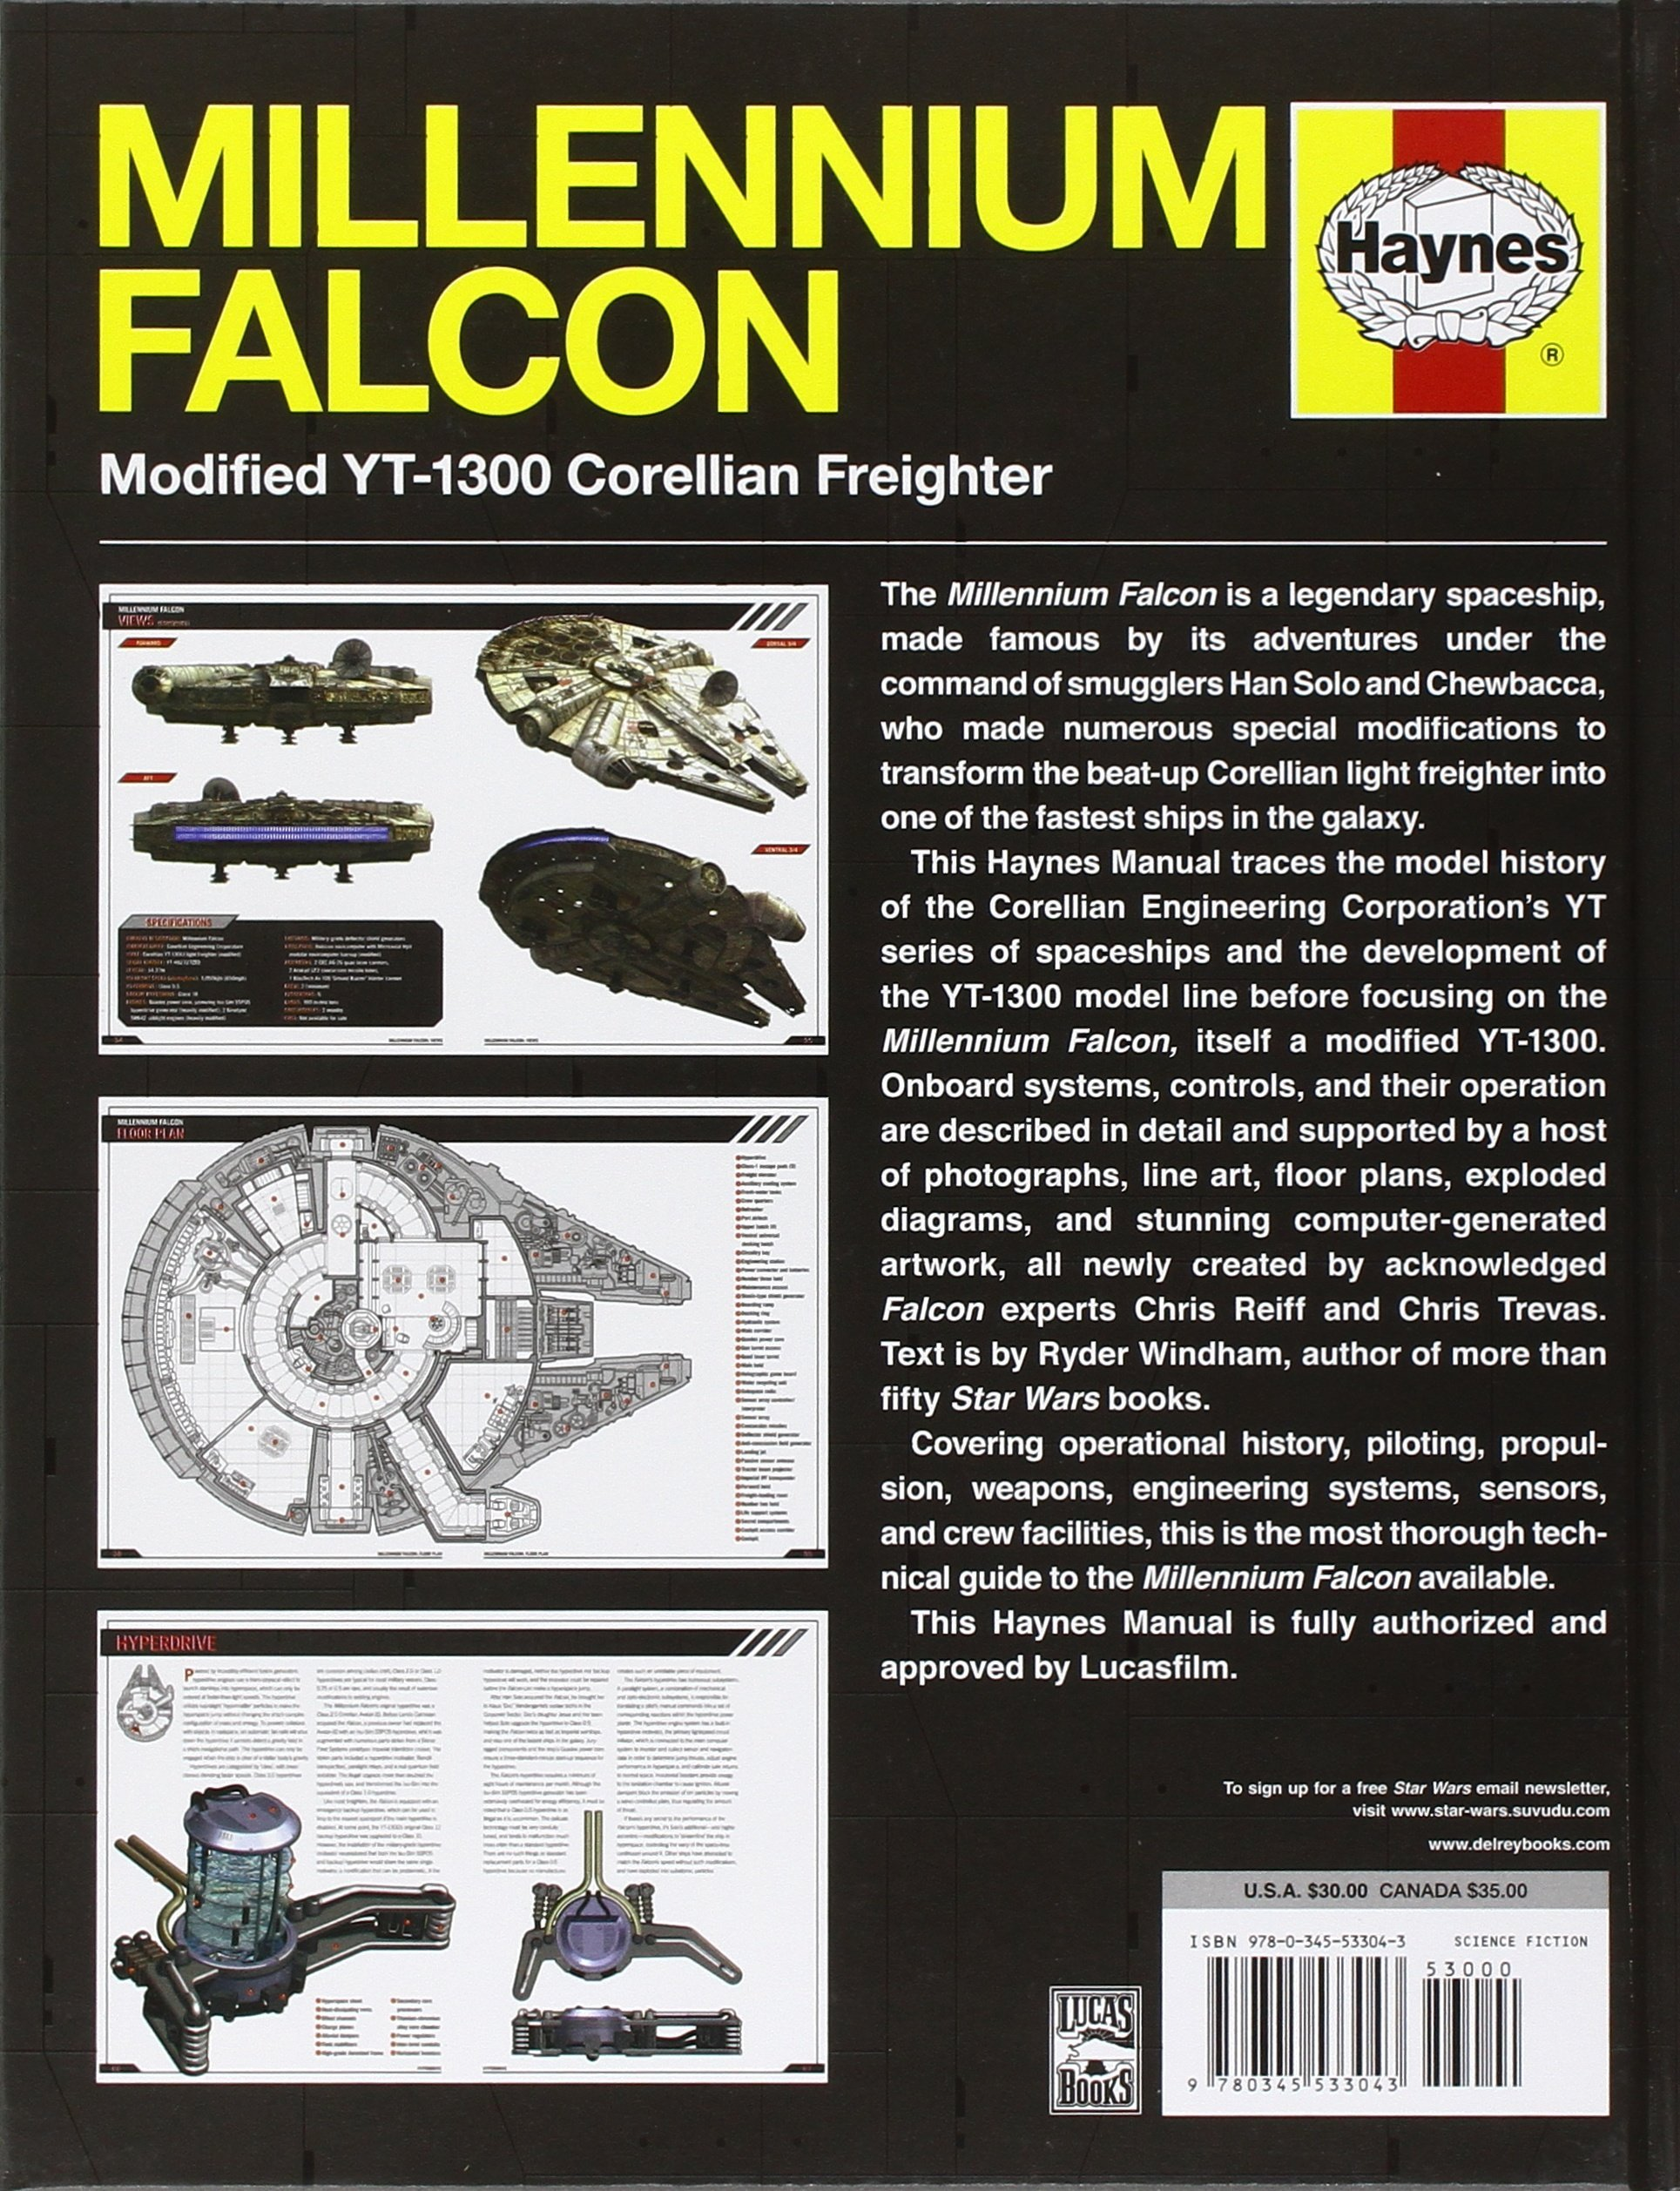 The Millennium Falcon Owners Workshop Manual: Star Wars